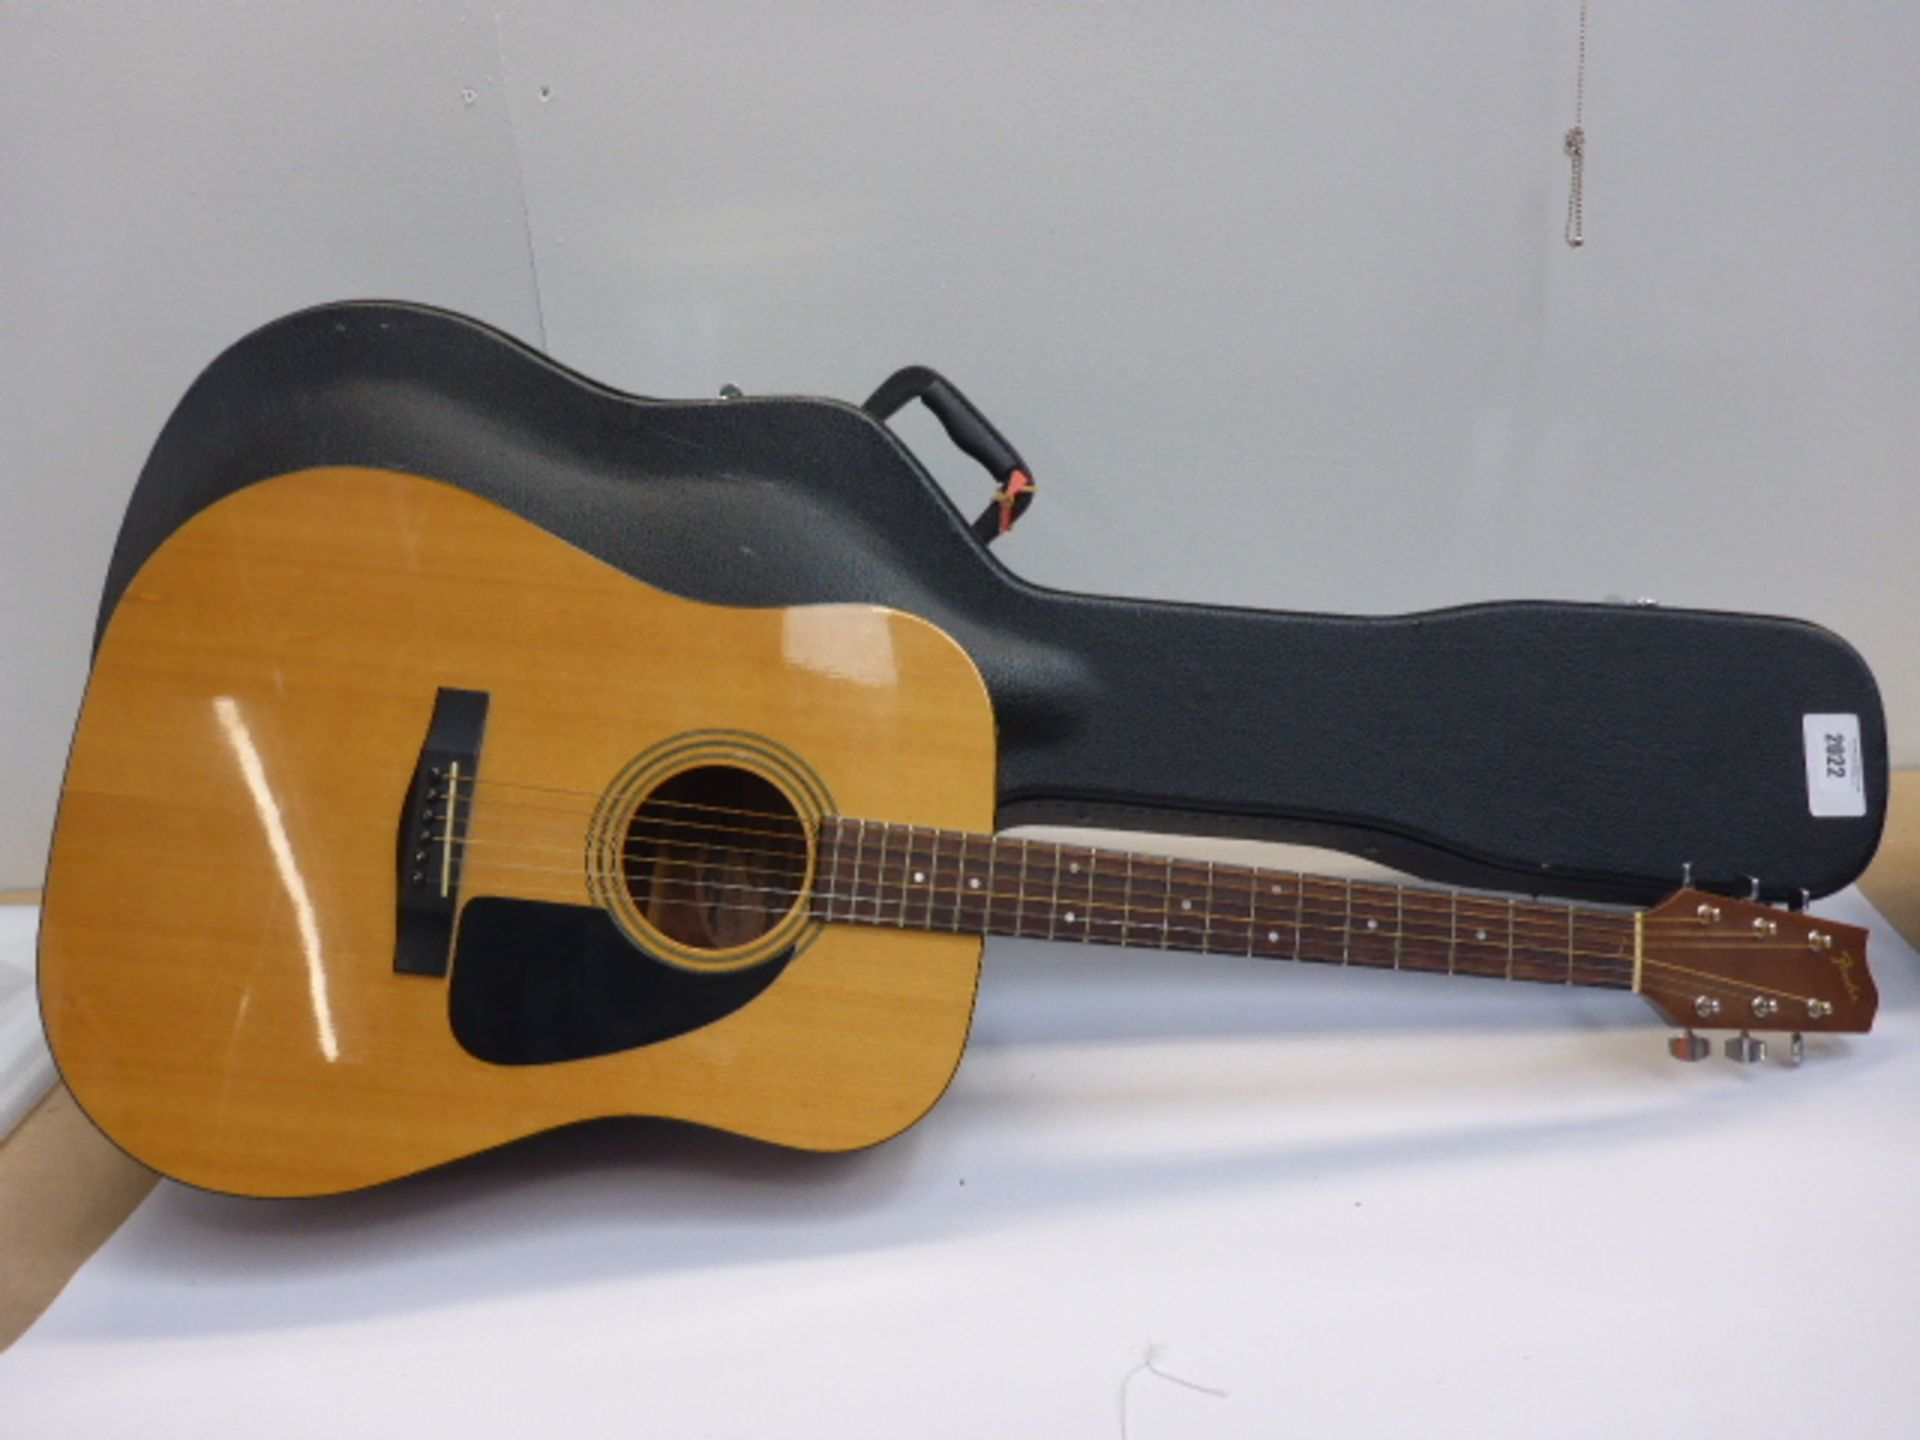 Lot 2022 - Fender Gemini II acoustic guitar in hard carry case